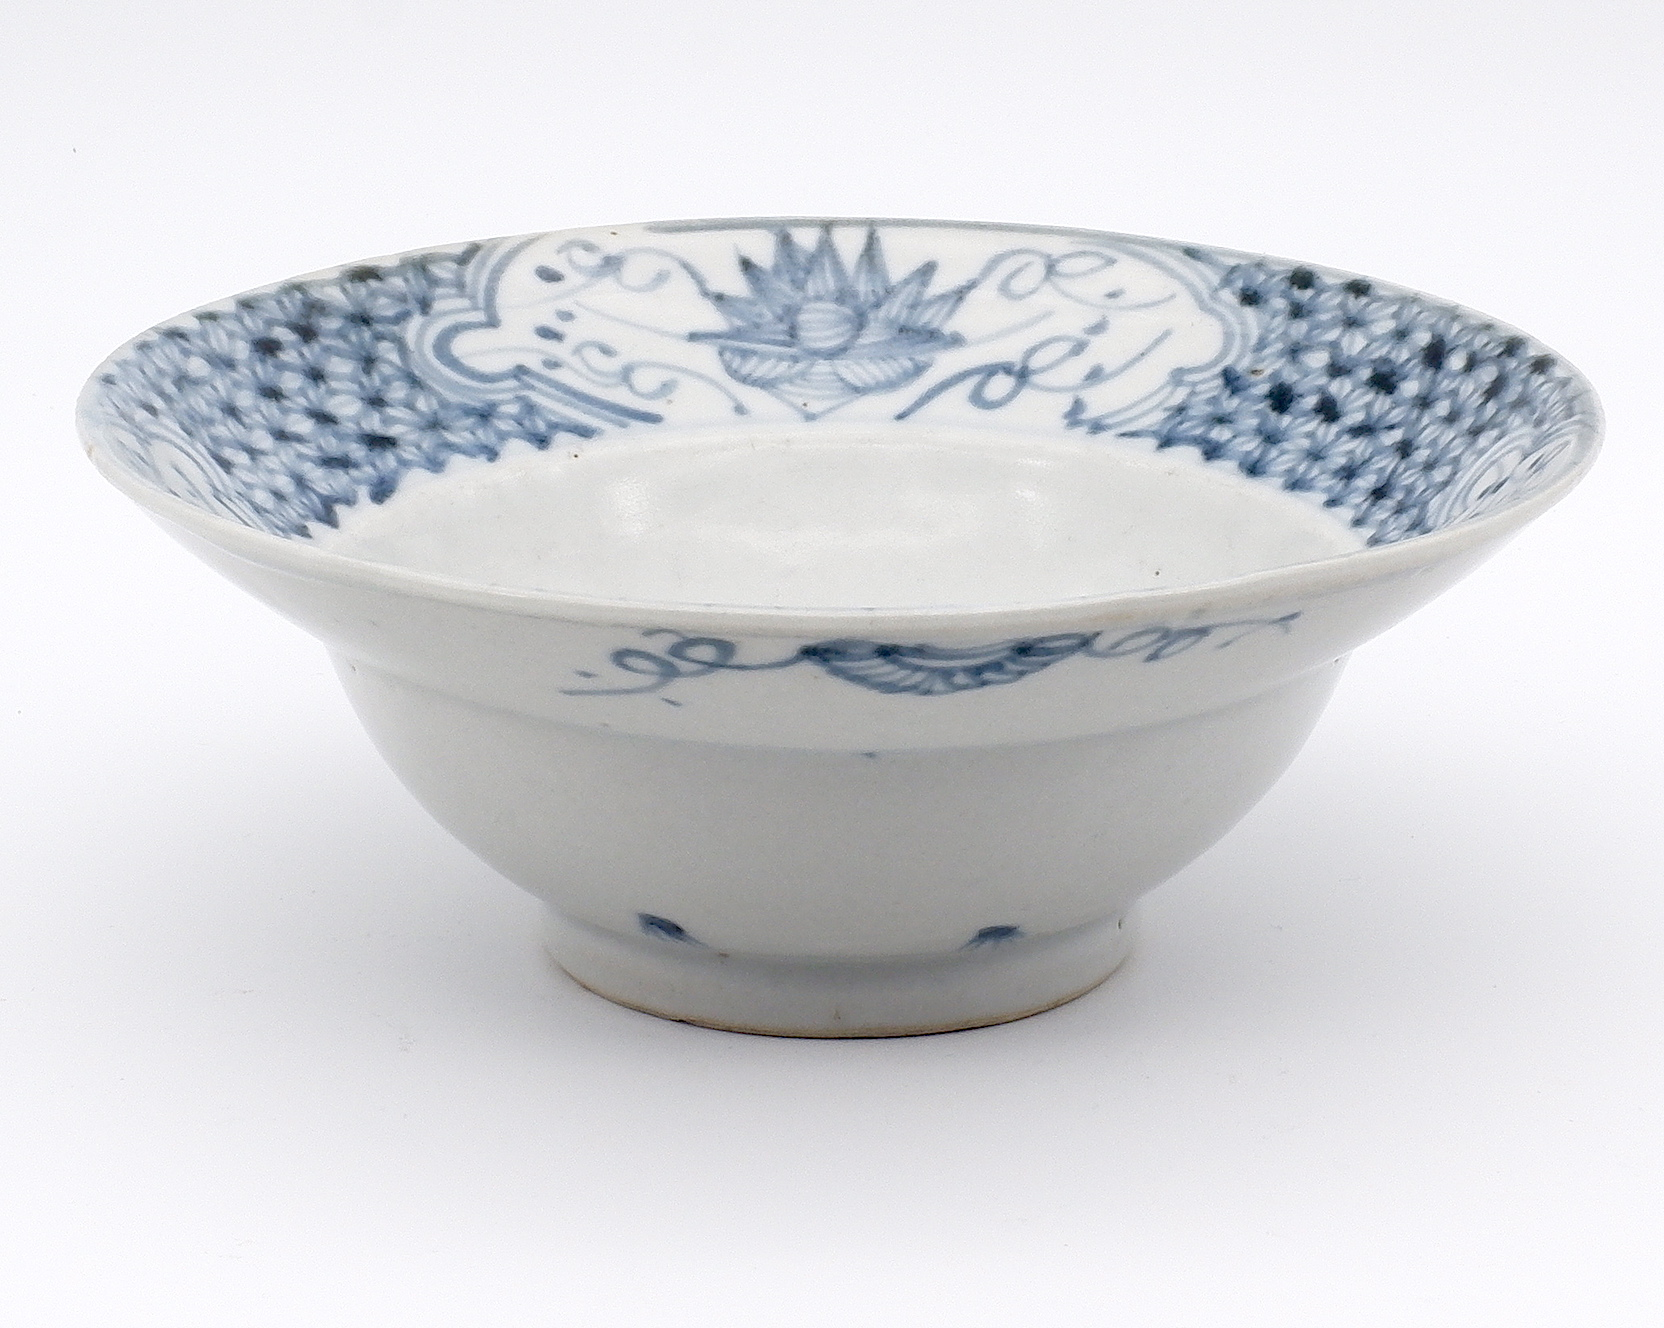 'Chinese Fujian Ware Blue and White Bowl with Lotus Design Early 19th Century'